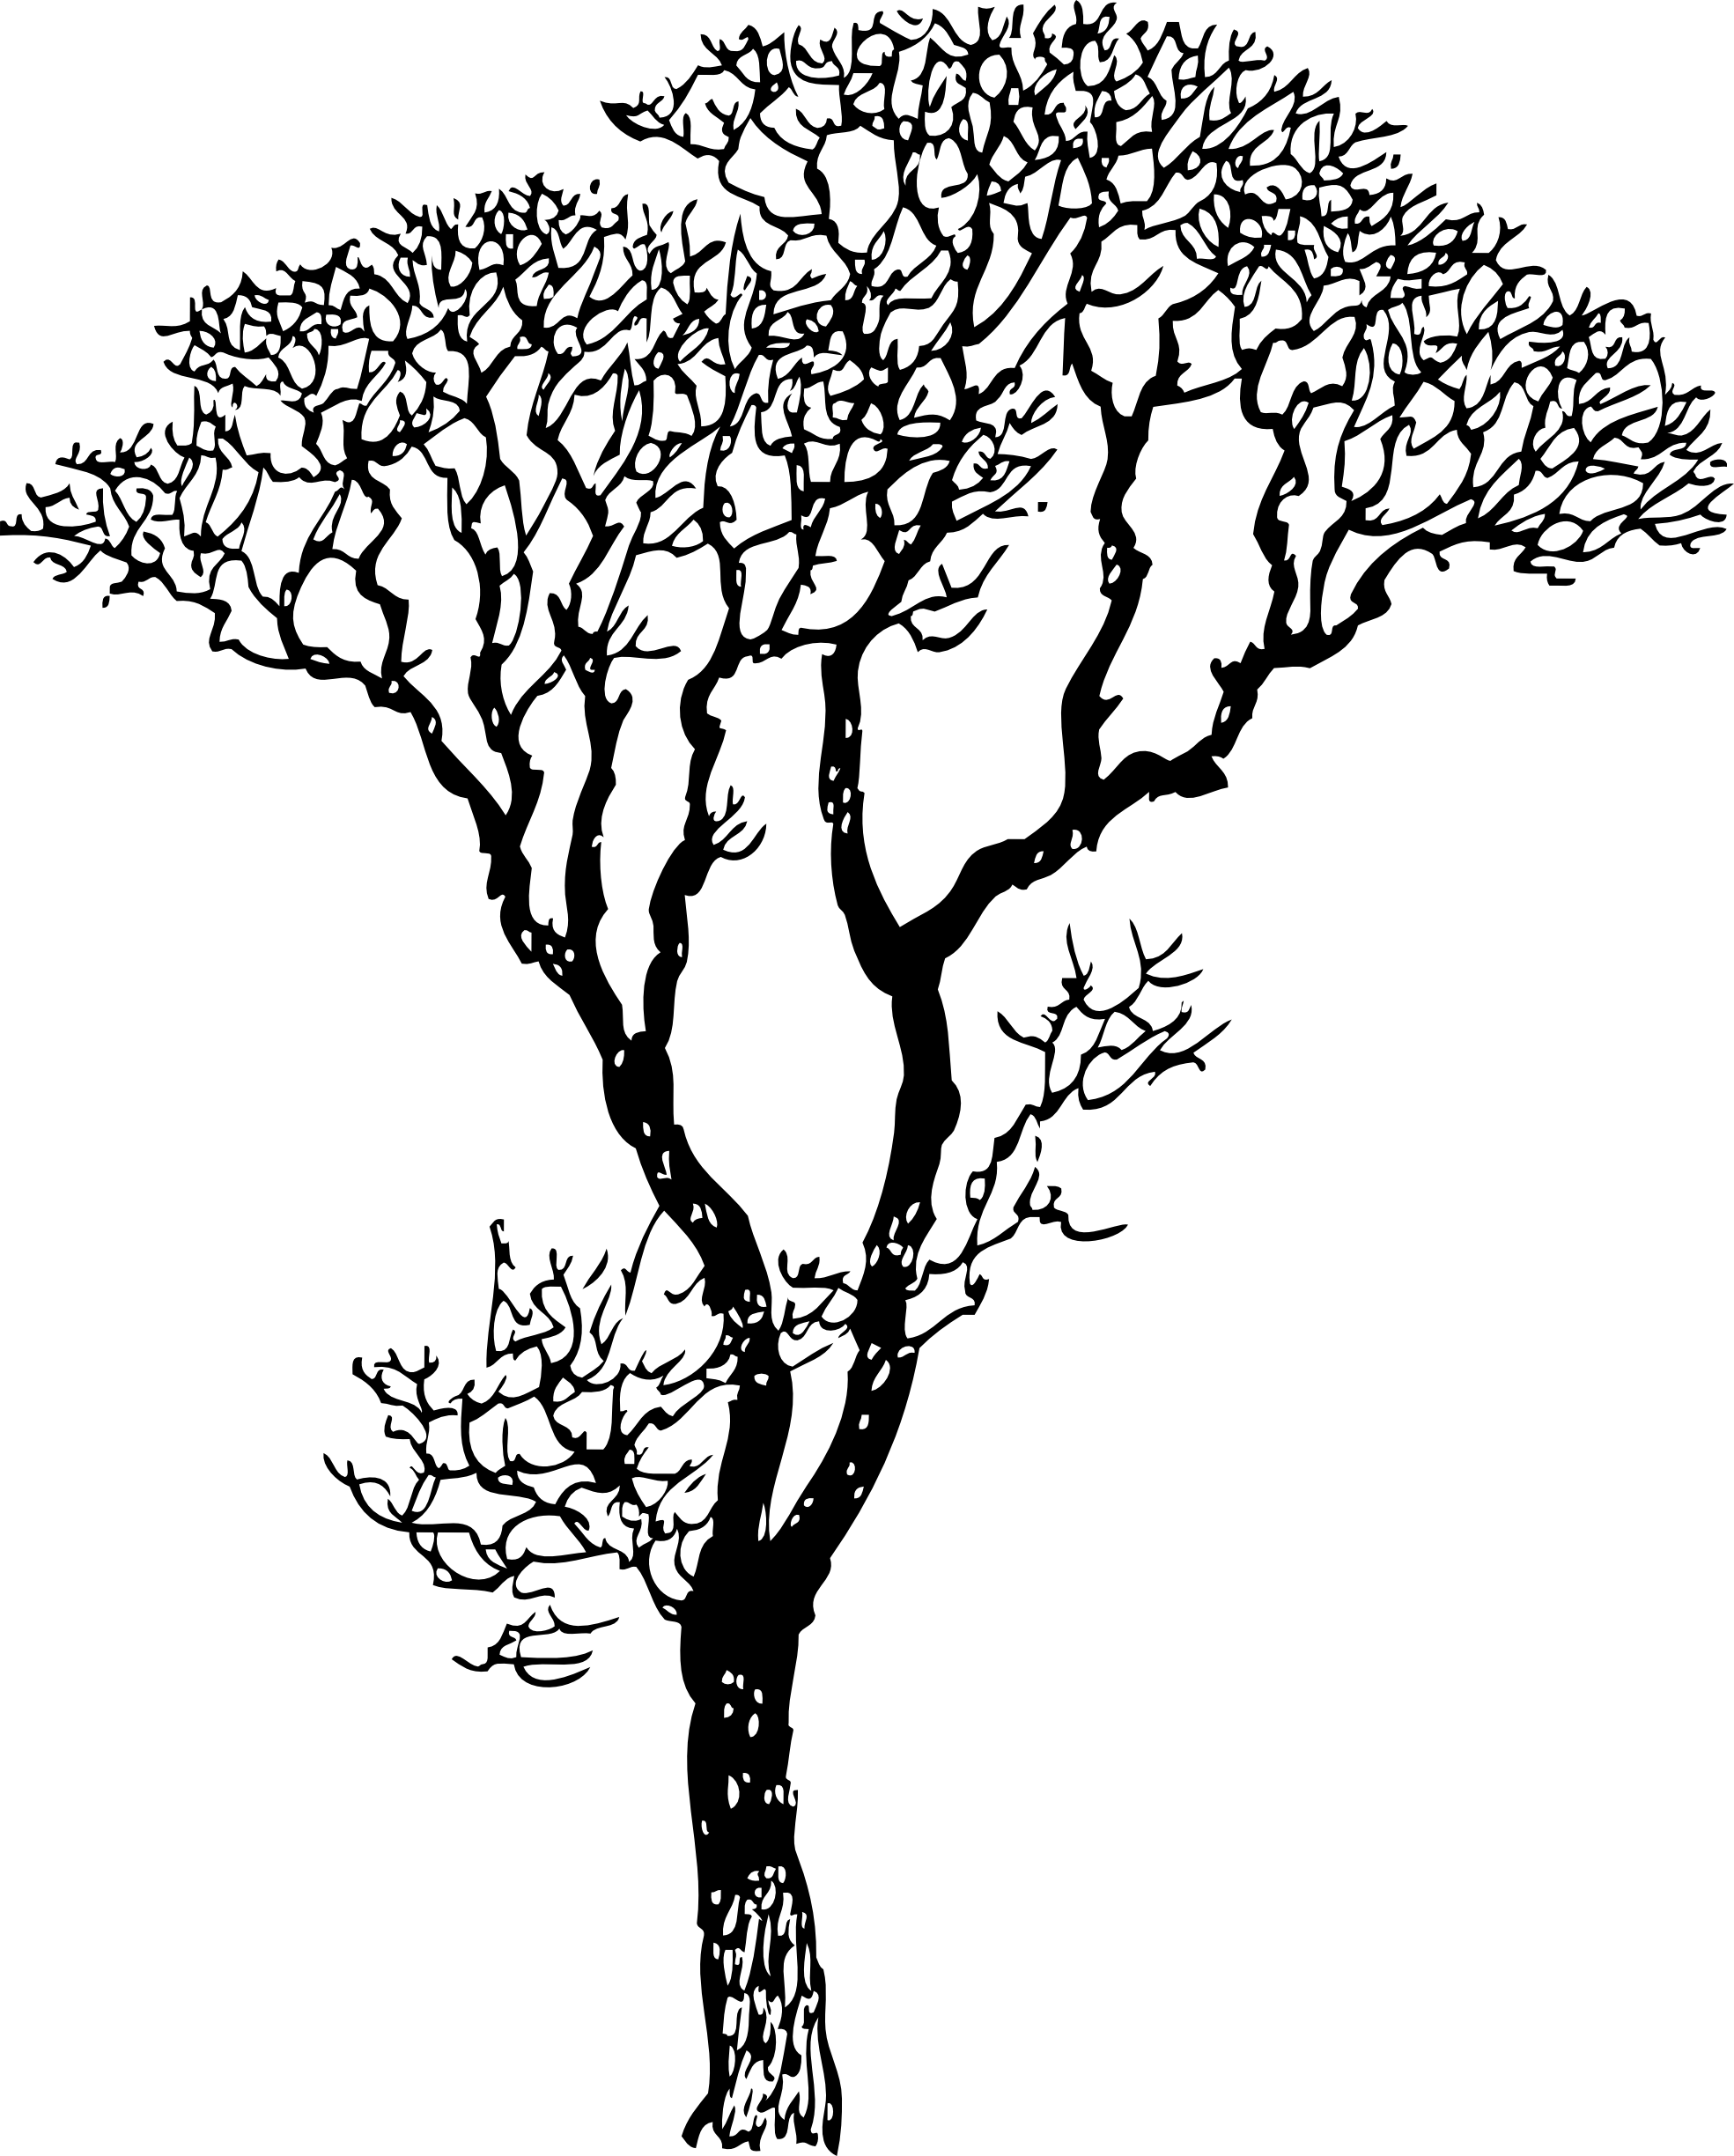 3 vector nature tree. Bare black white line